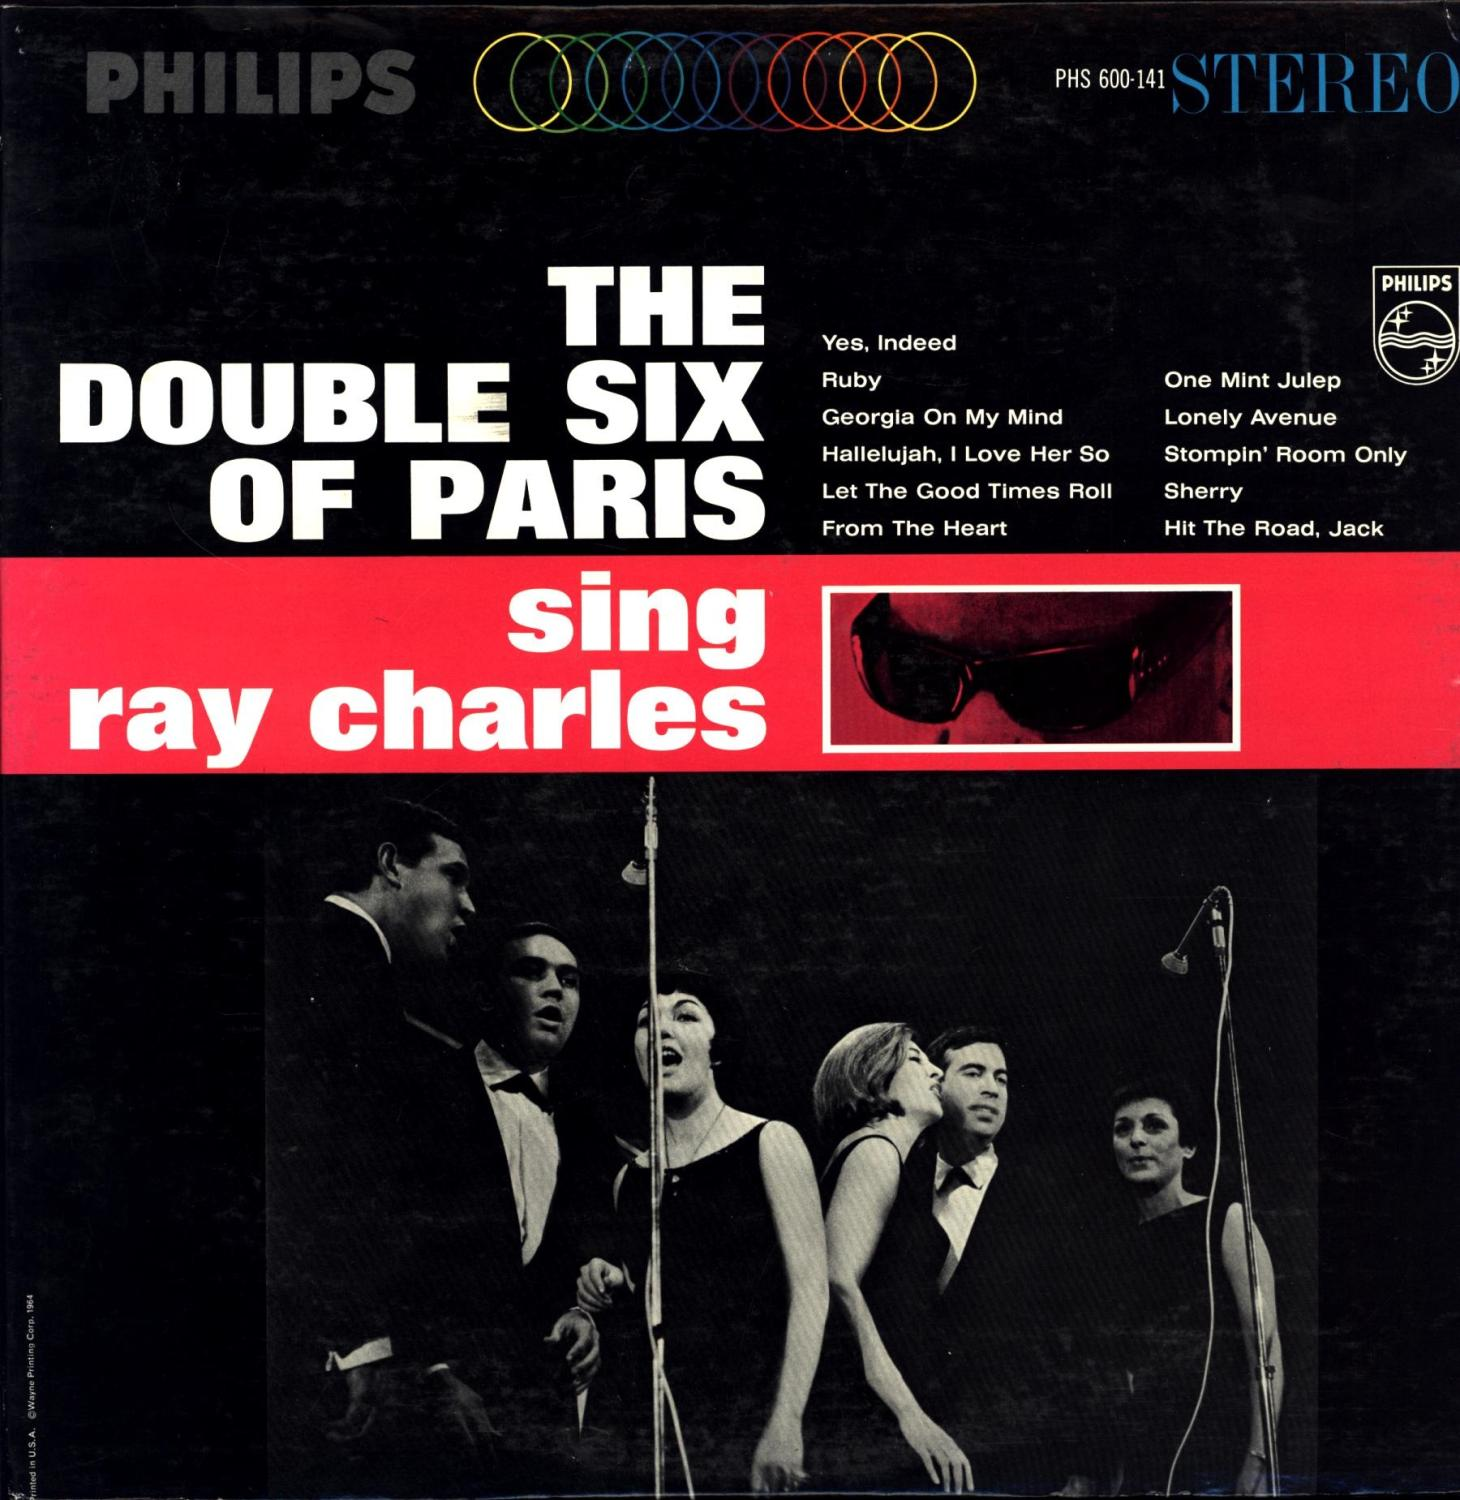 The Double Six of Paris sing ray charles (VINYL LP) The Double Six of Paris Near Fine Hardcover